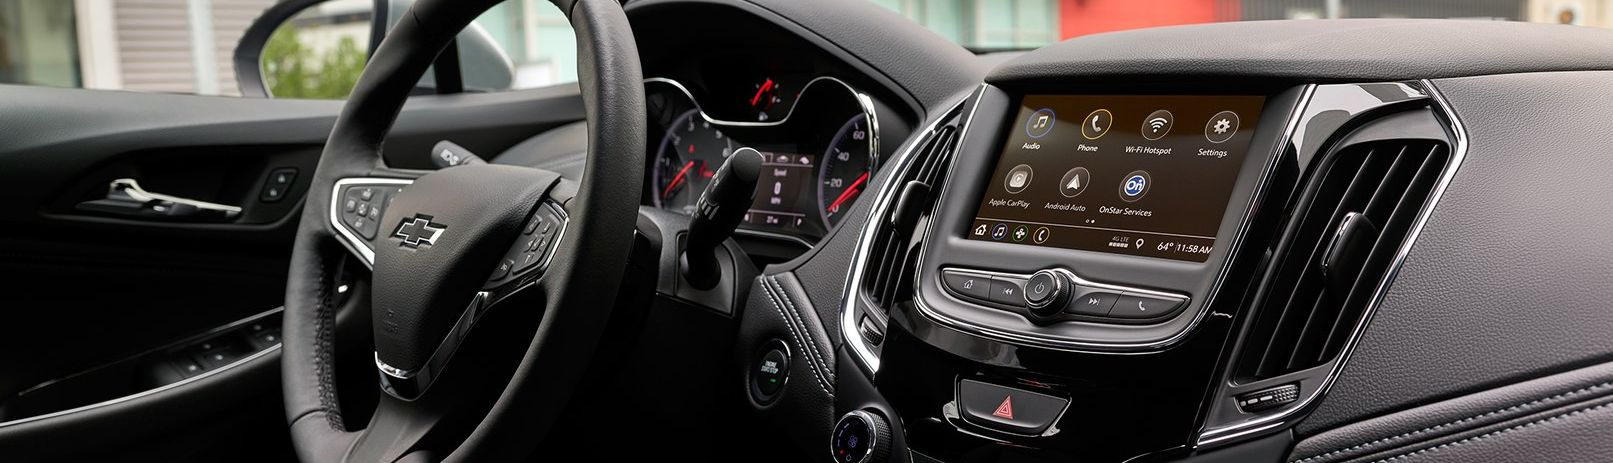 Touchscreen Display in the 2019 Cruze